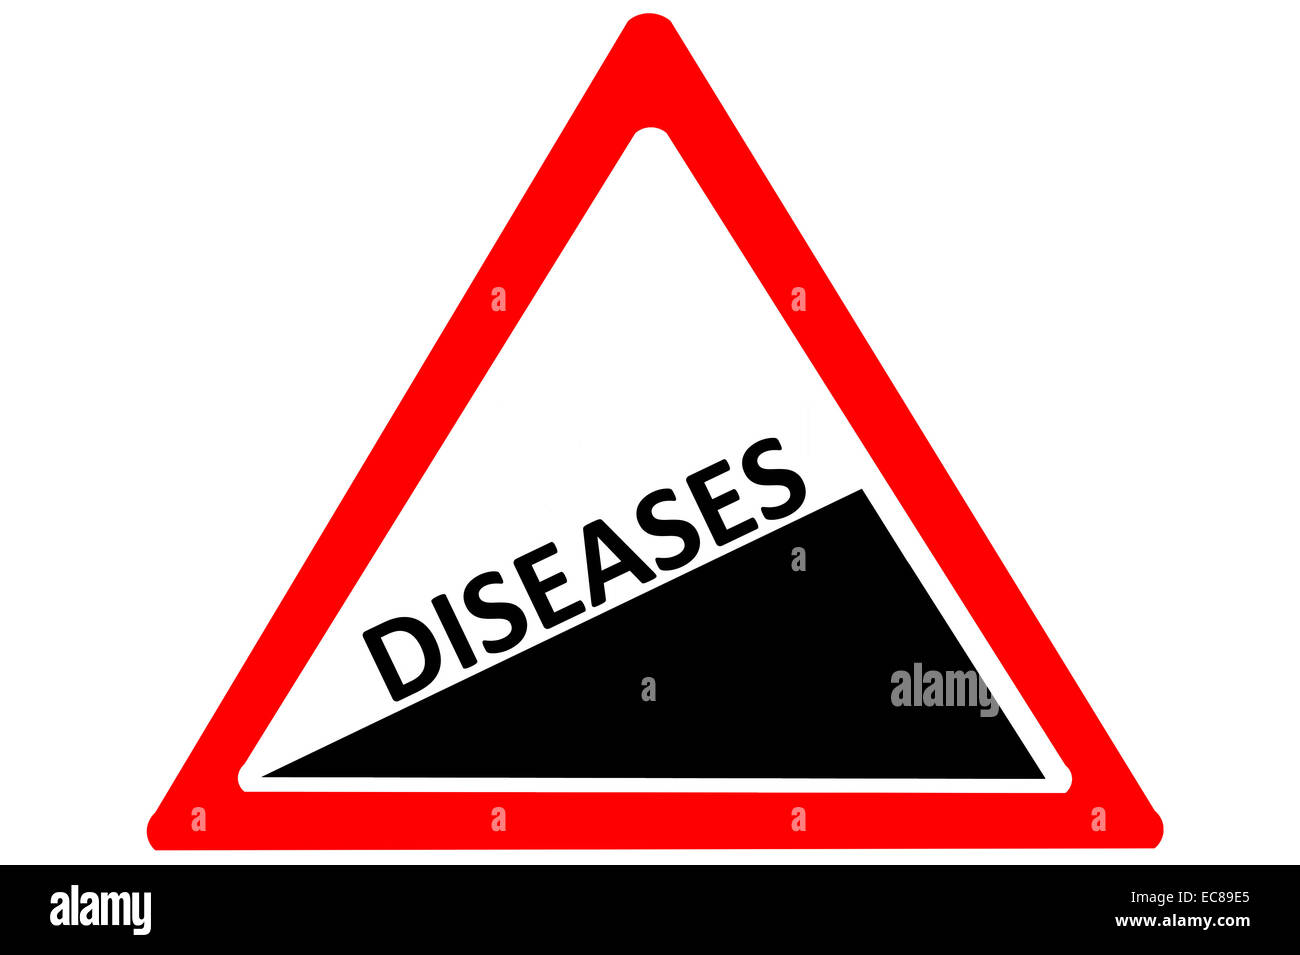 Diseases rising warning road sign isolated on pure white background - Stock Image